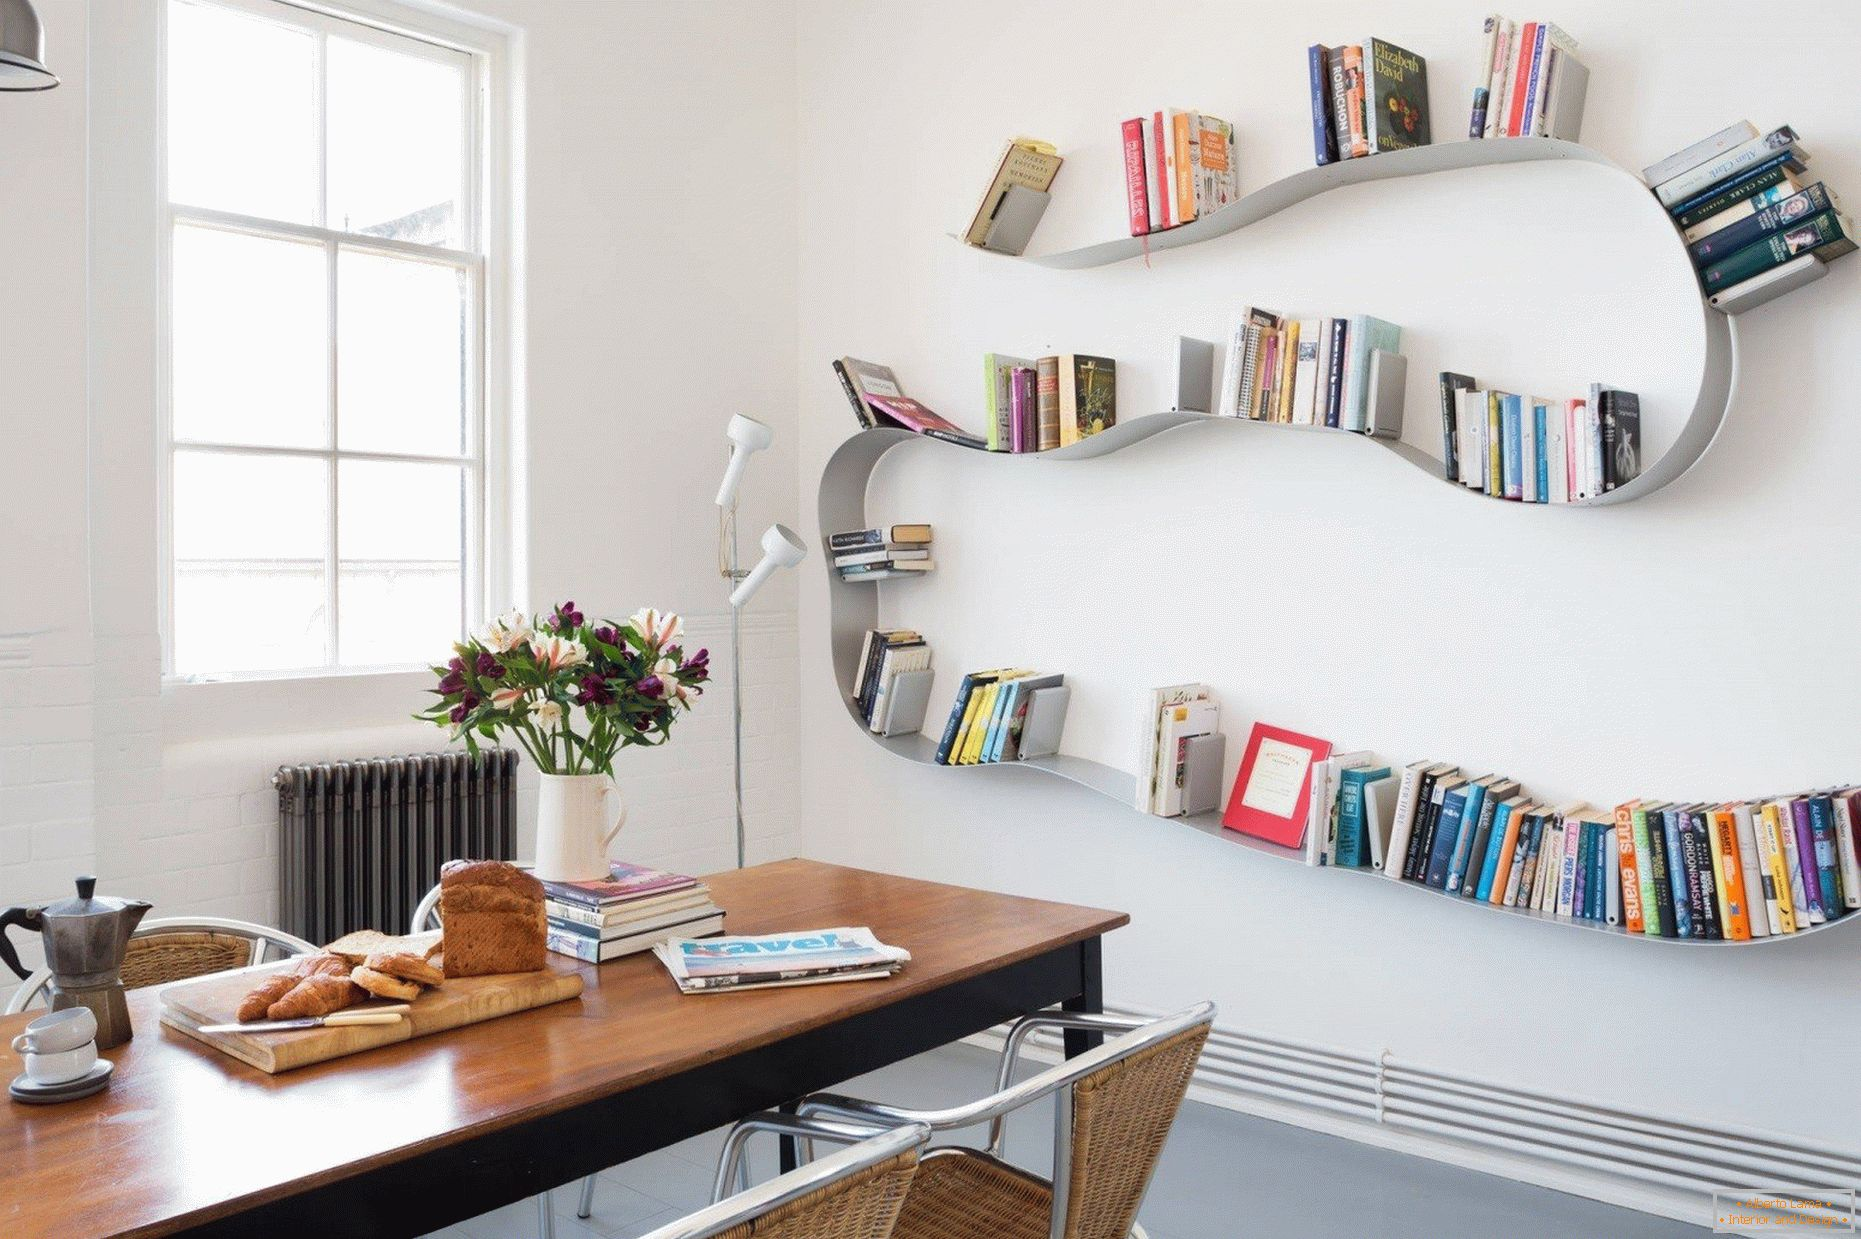 Curved shelves